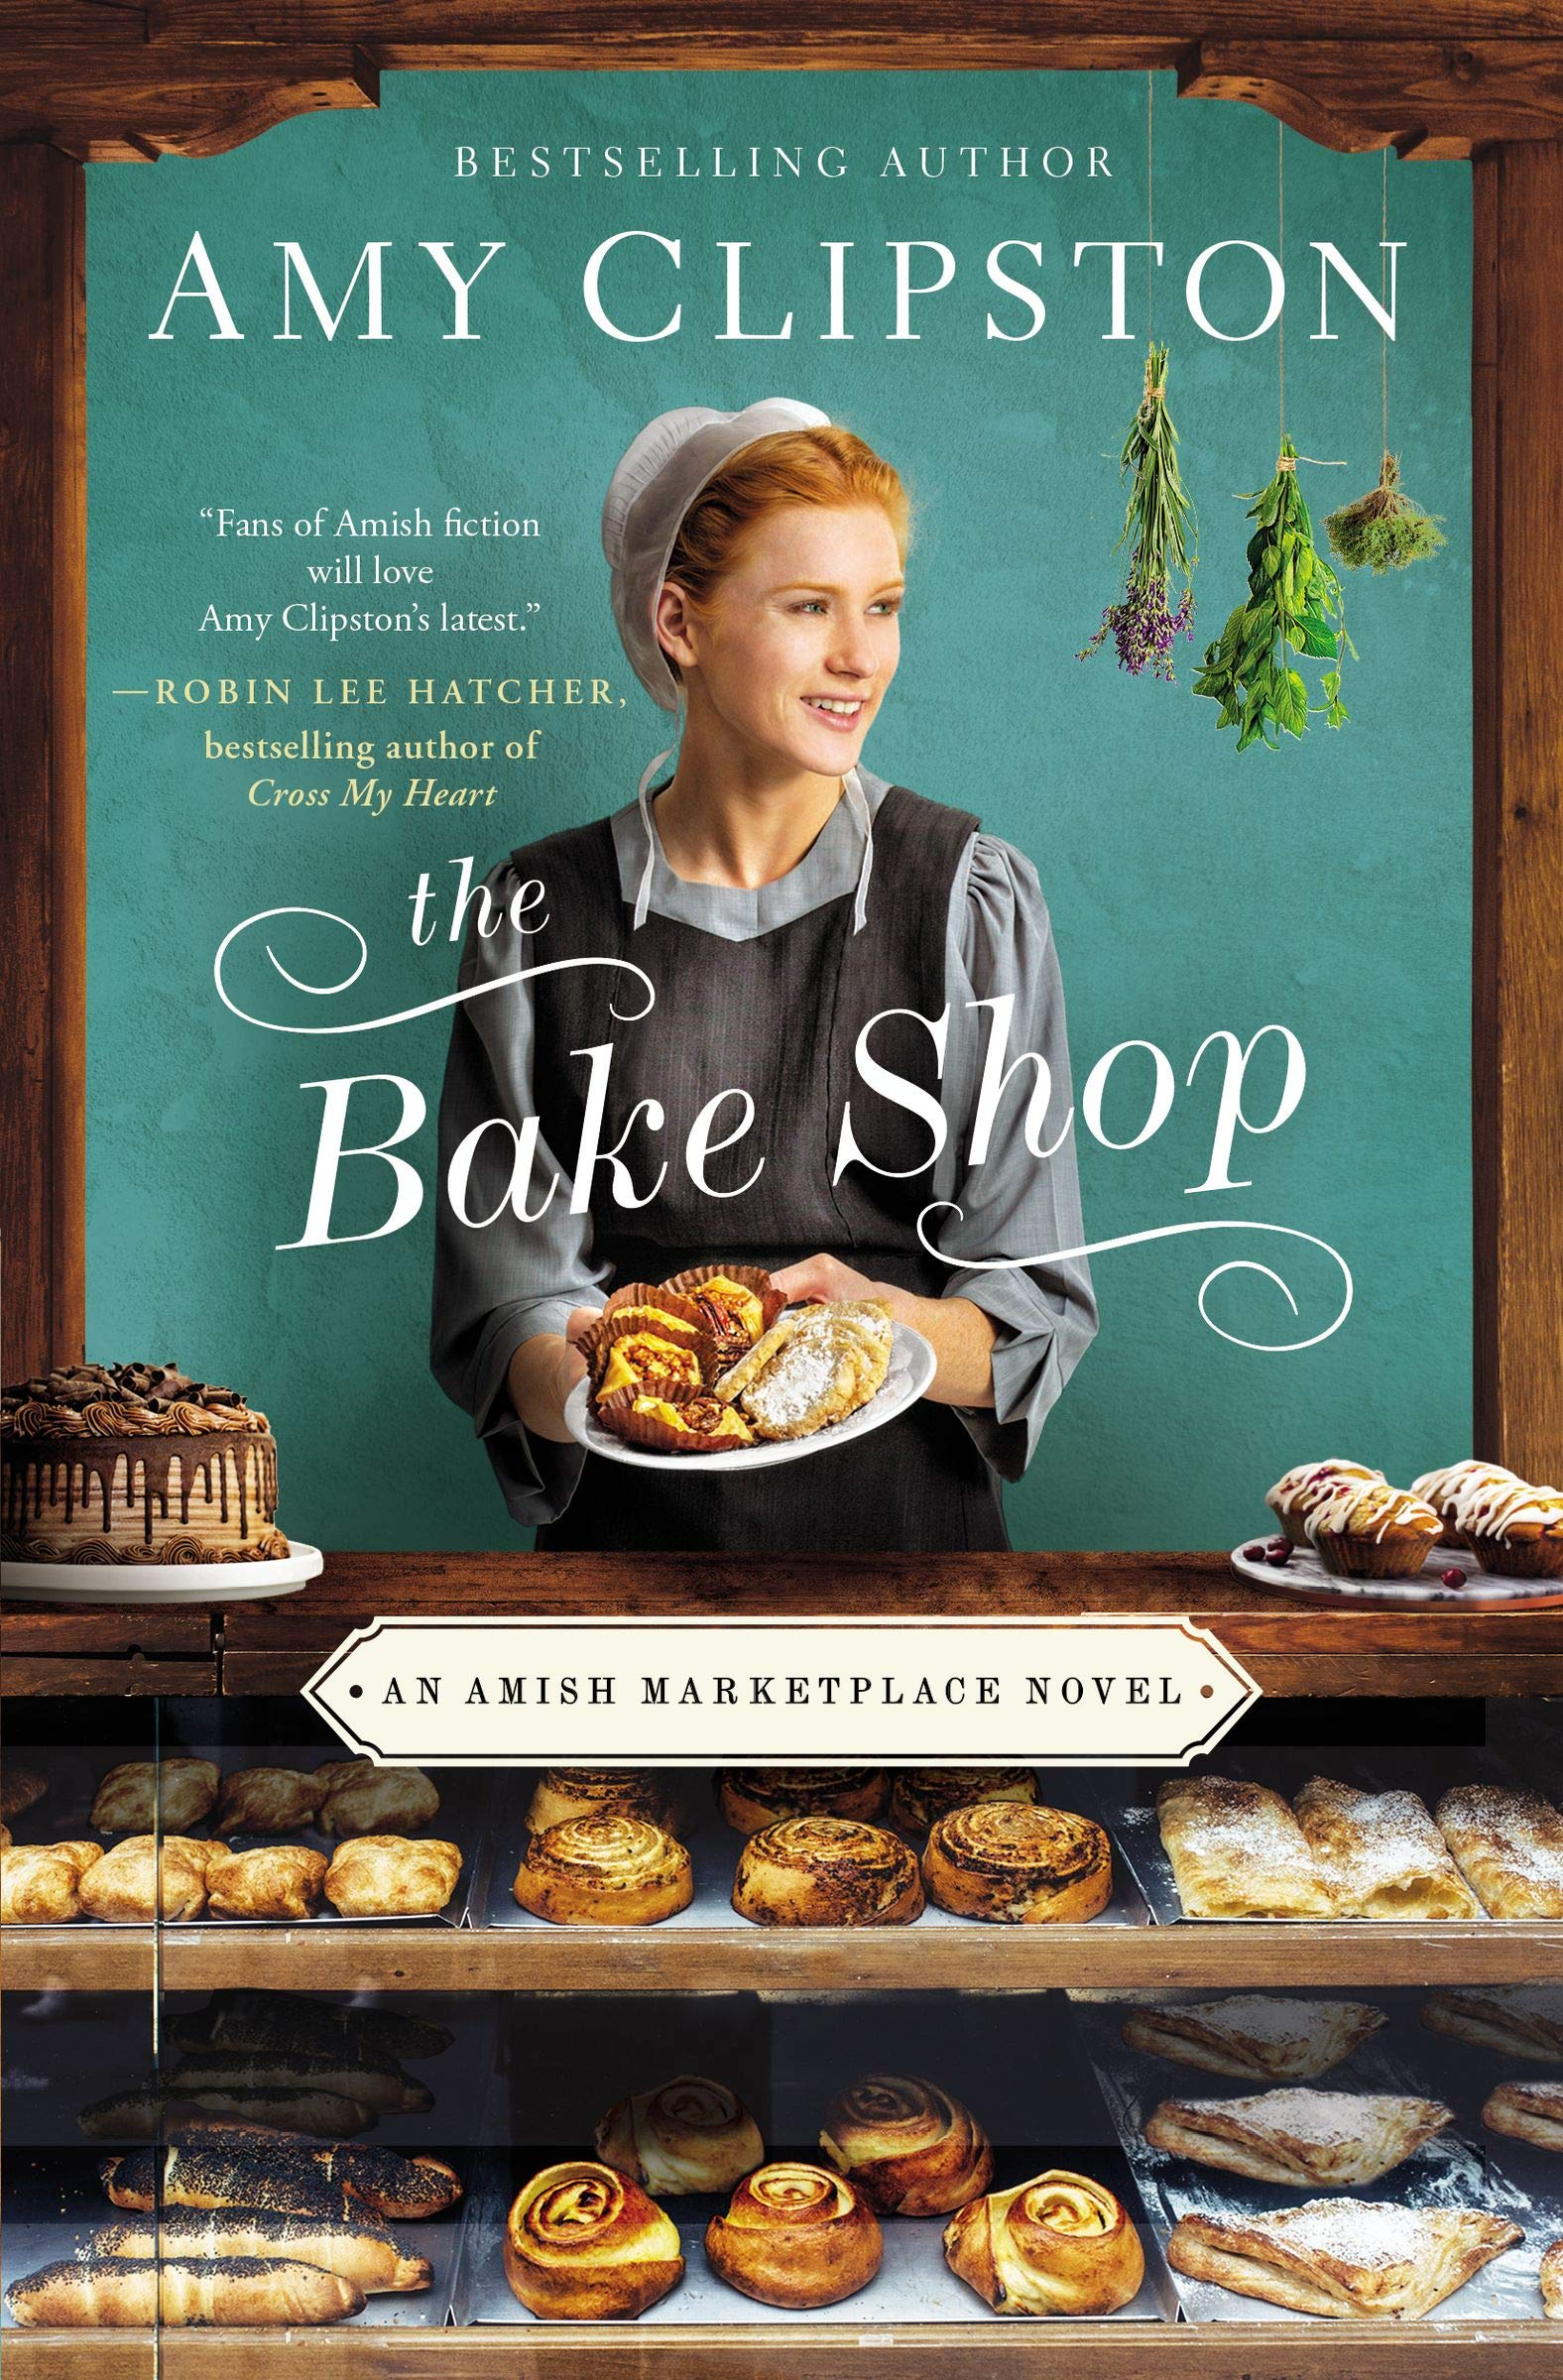 The Bake Shop (An Amish Marketplace Novel) by HarperCollins Christian Pub.